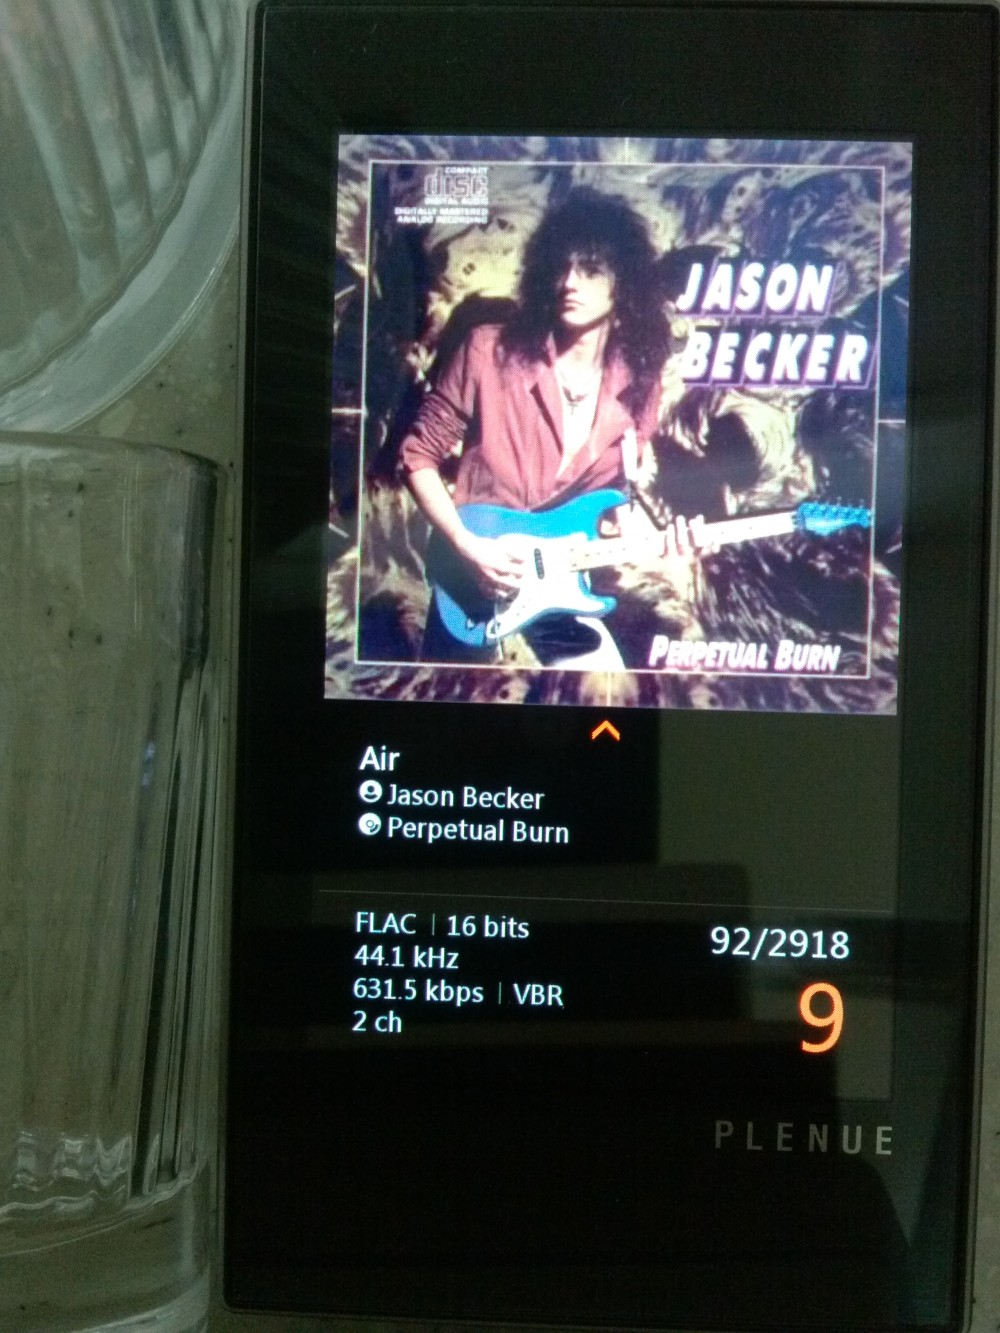 Jason Becker - Perpetual Burn Photo